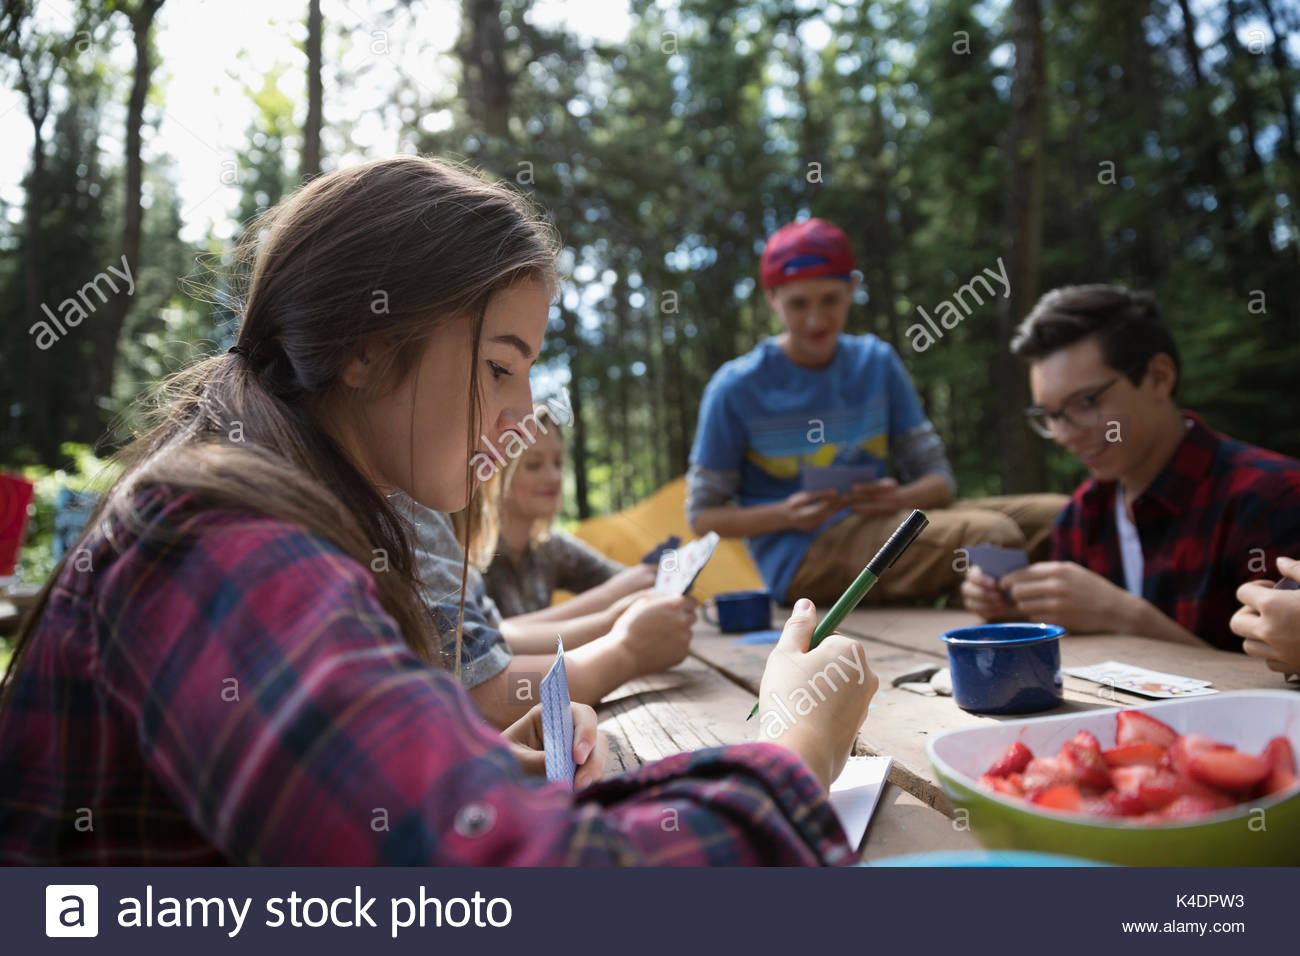 Teenage outdoor school girl student writing at campsite picnic table - Stock Image